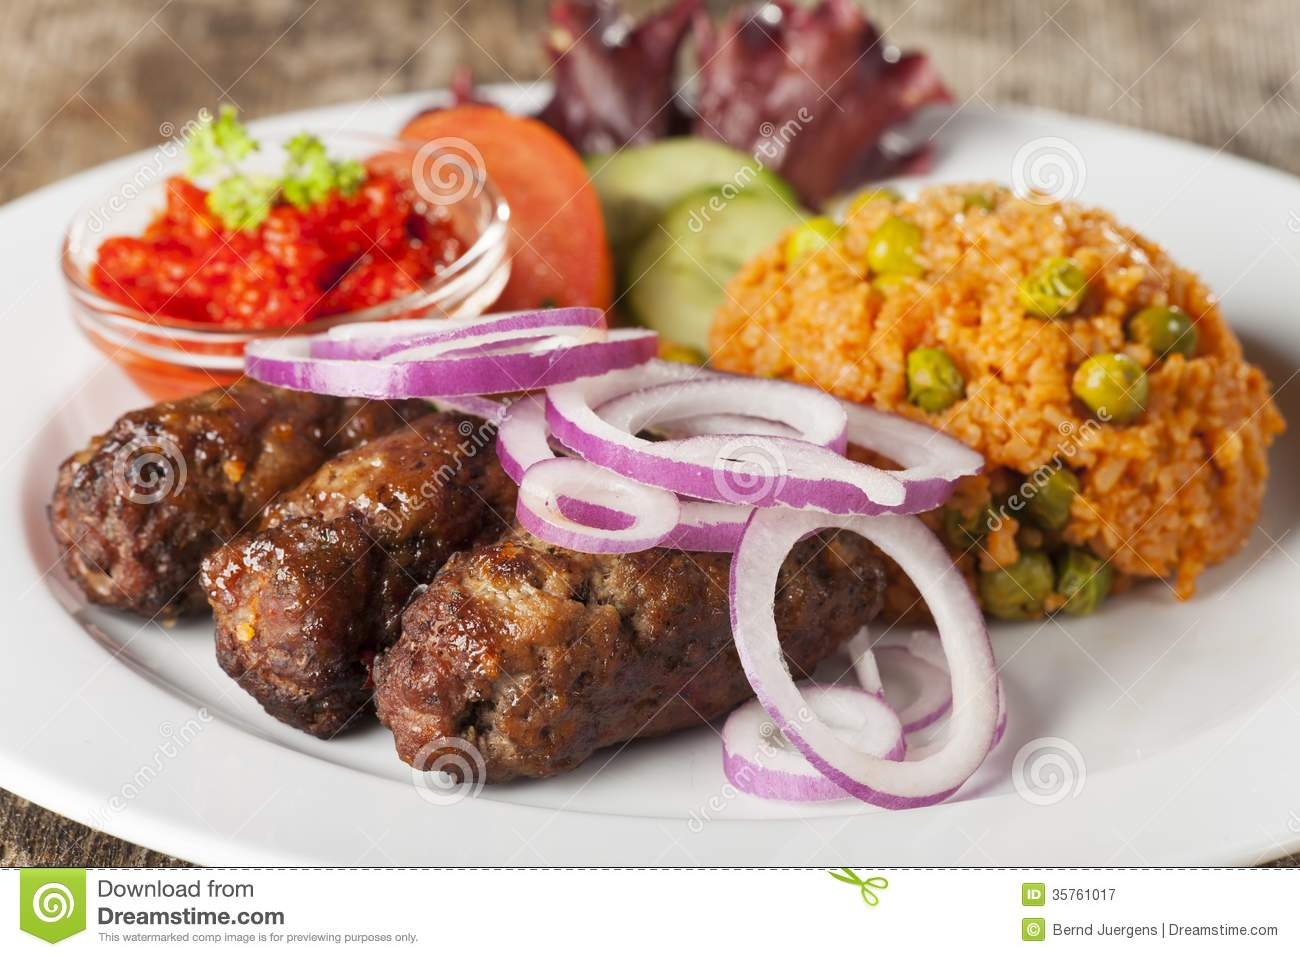 Cevapcici Royalty Free Stock Photography - Image: 35761017